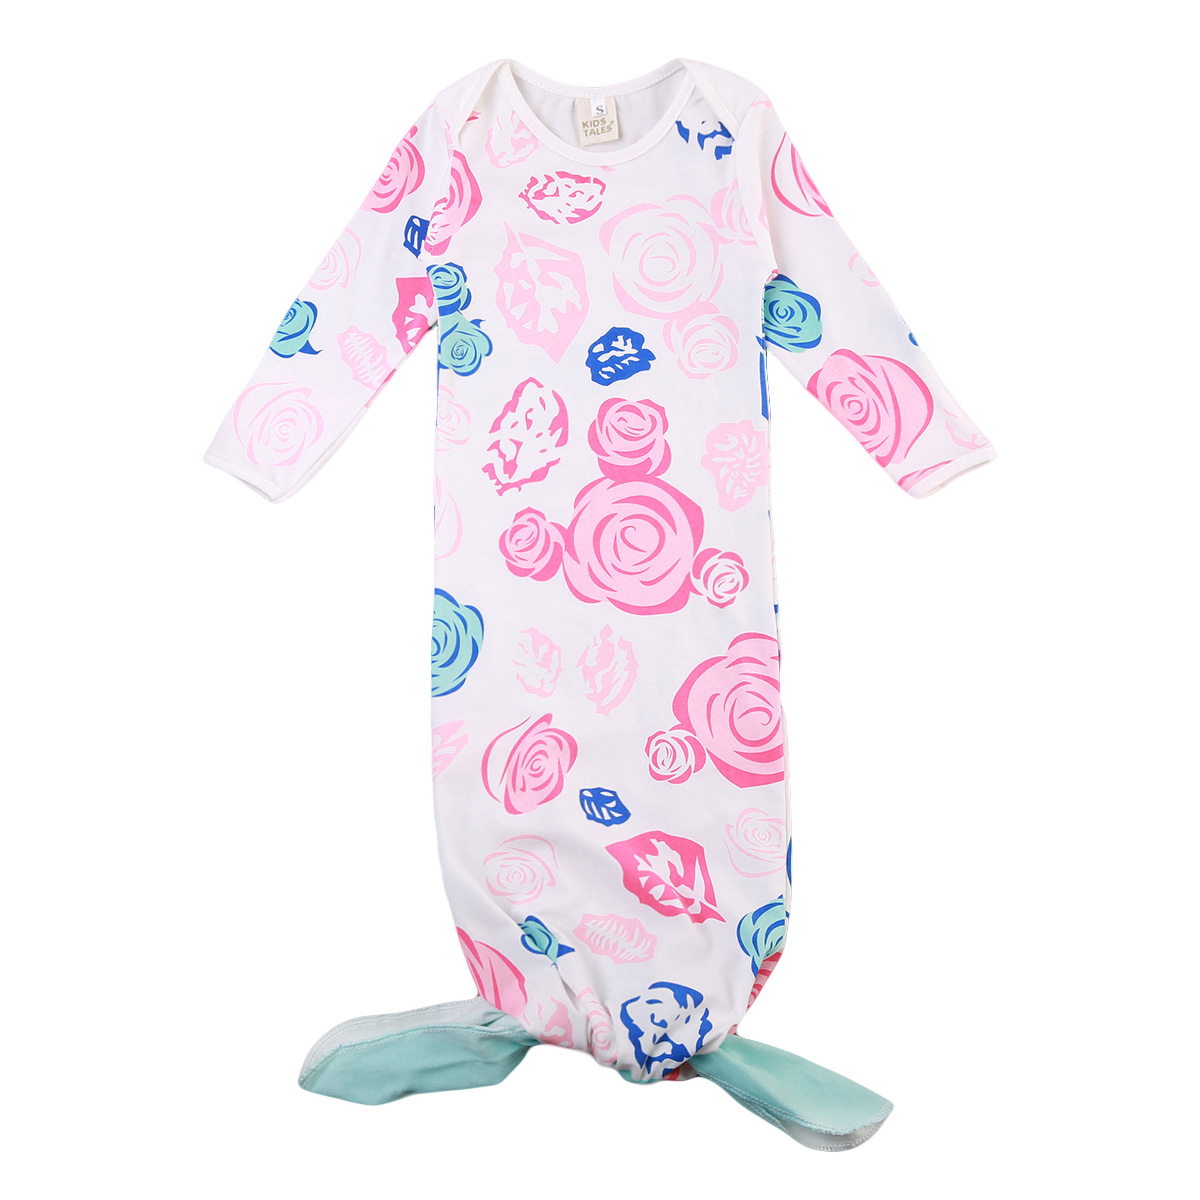 Rose print sleeping bag hQioH